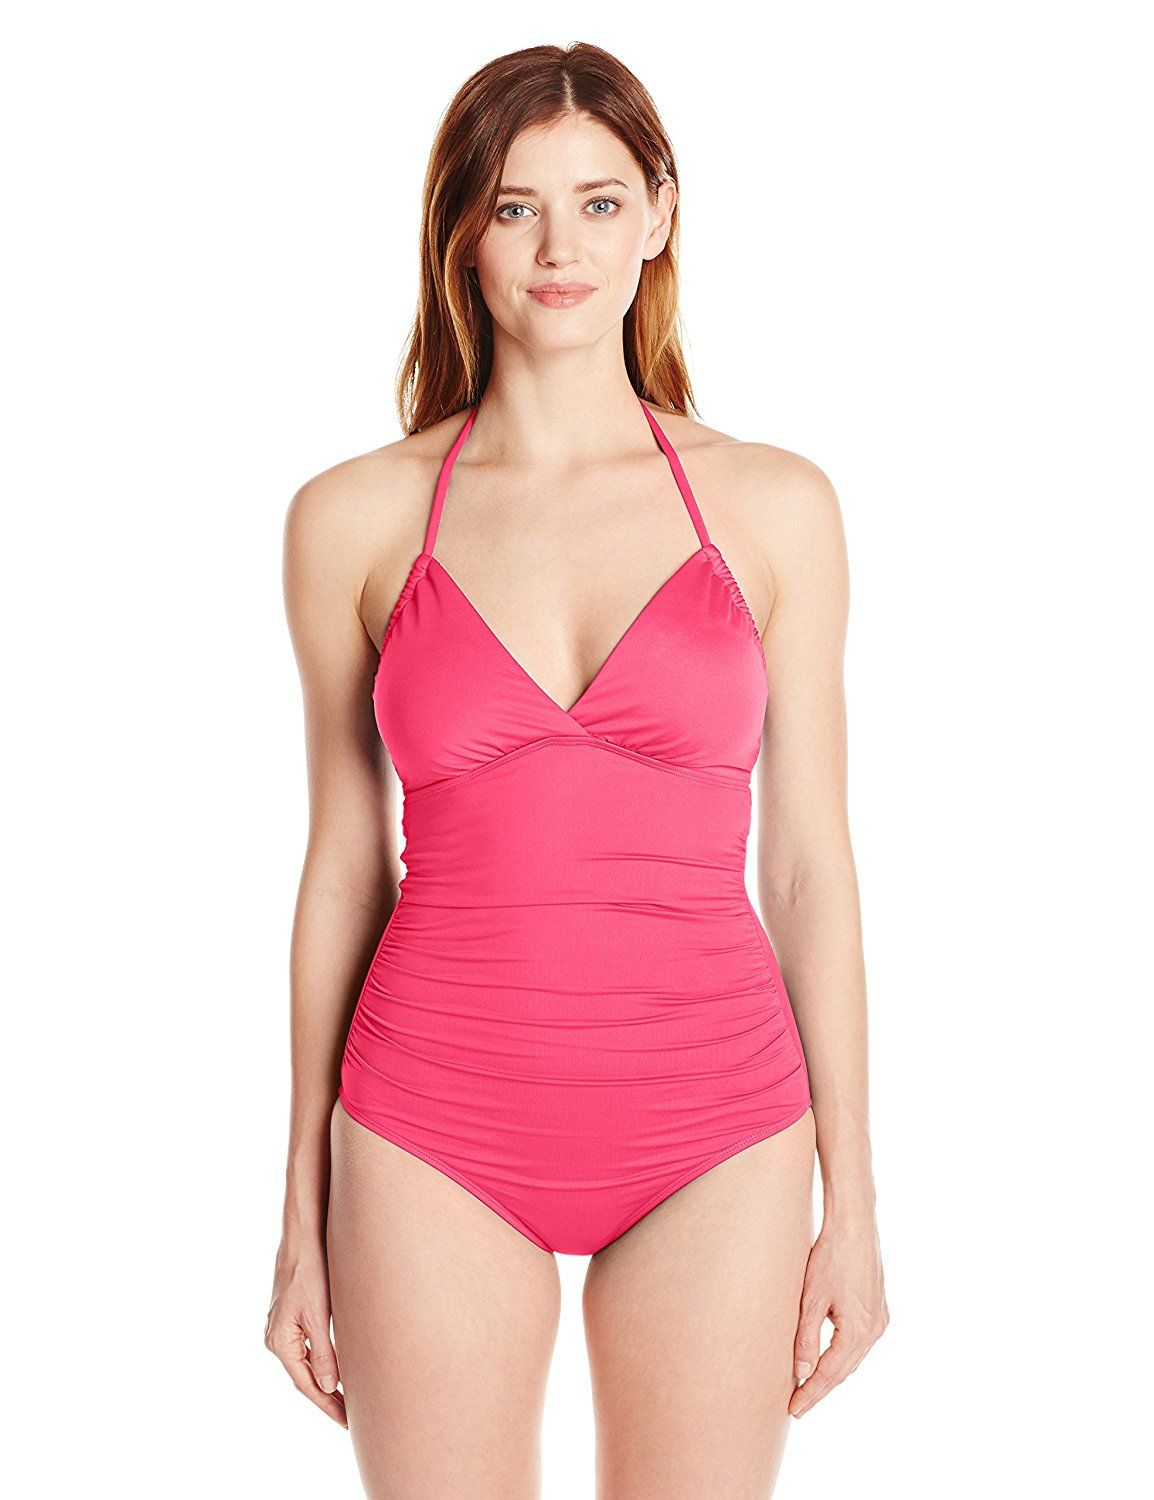 Lark & Ro Women's One-Piece Swimsuit with Adjustable Armhole at Amazon Women's Clothing store: